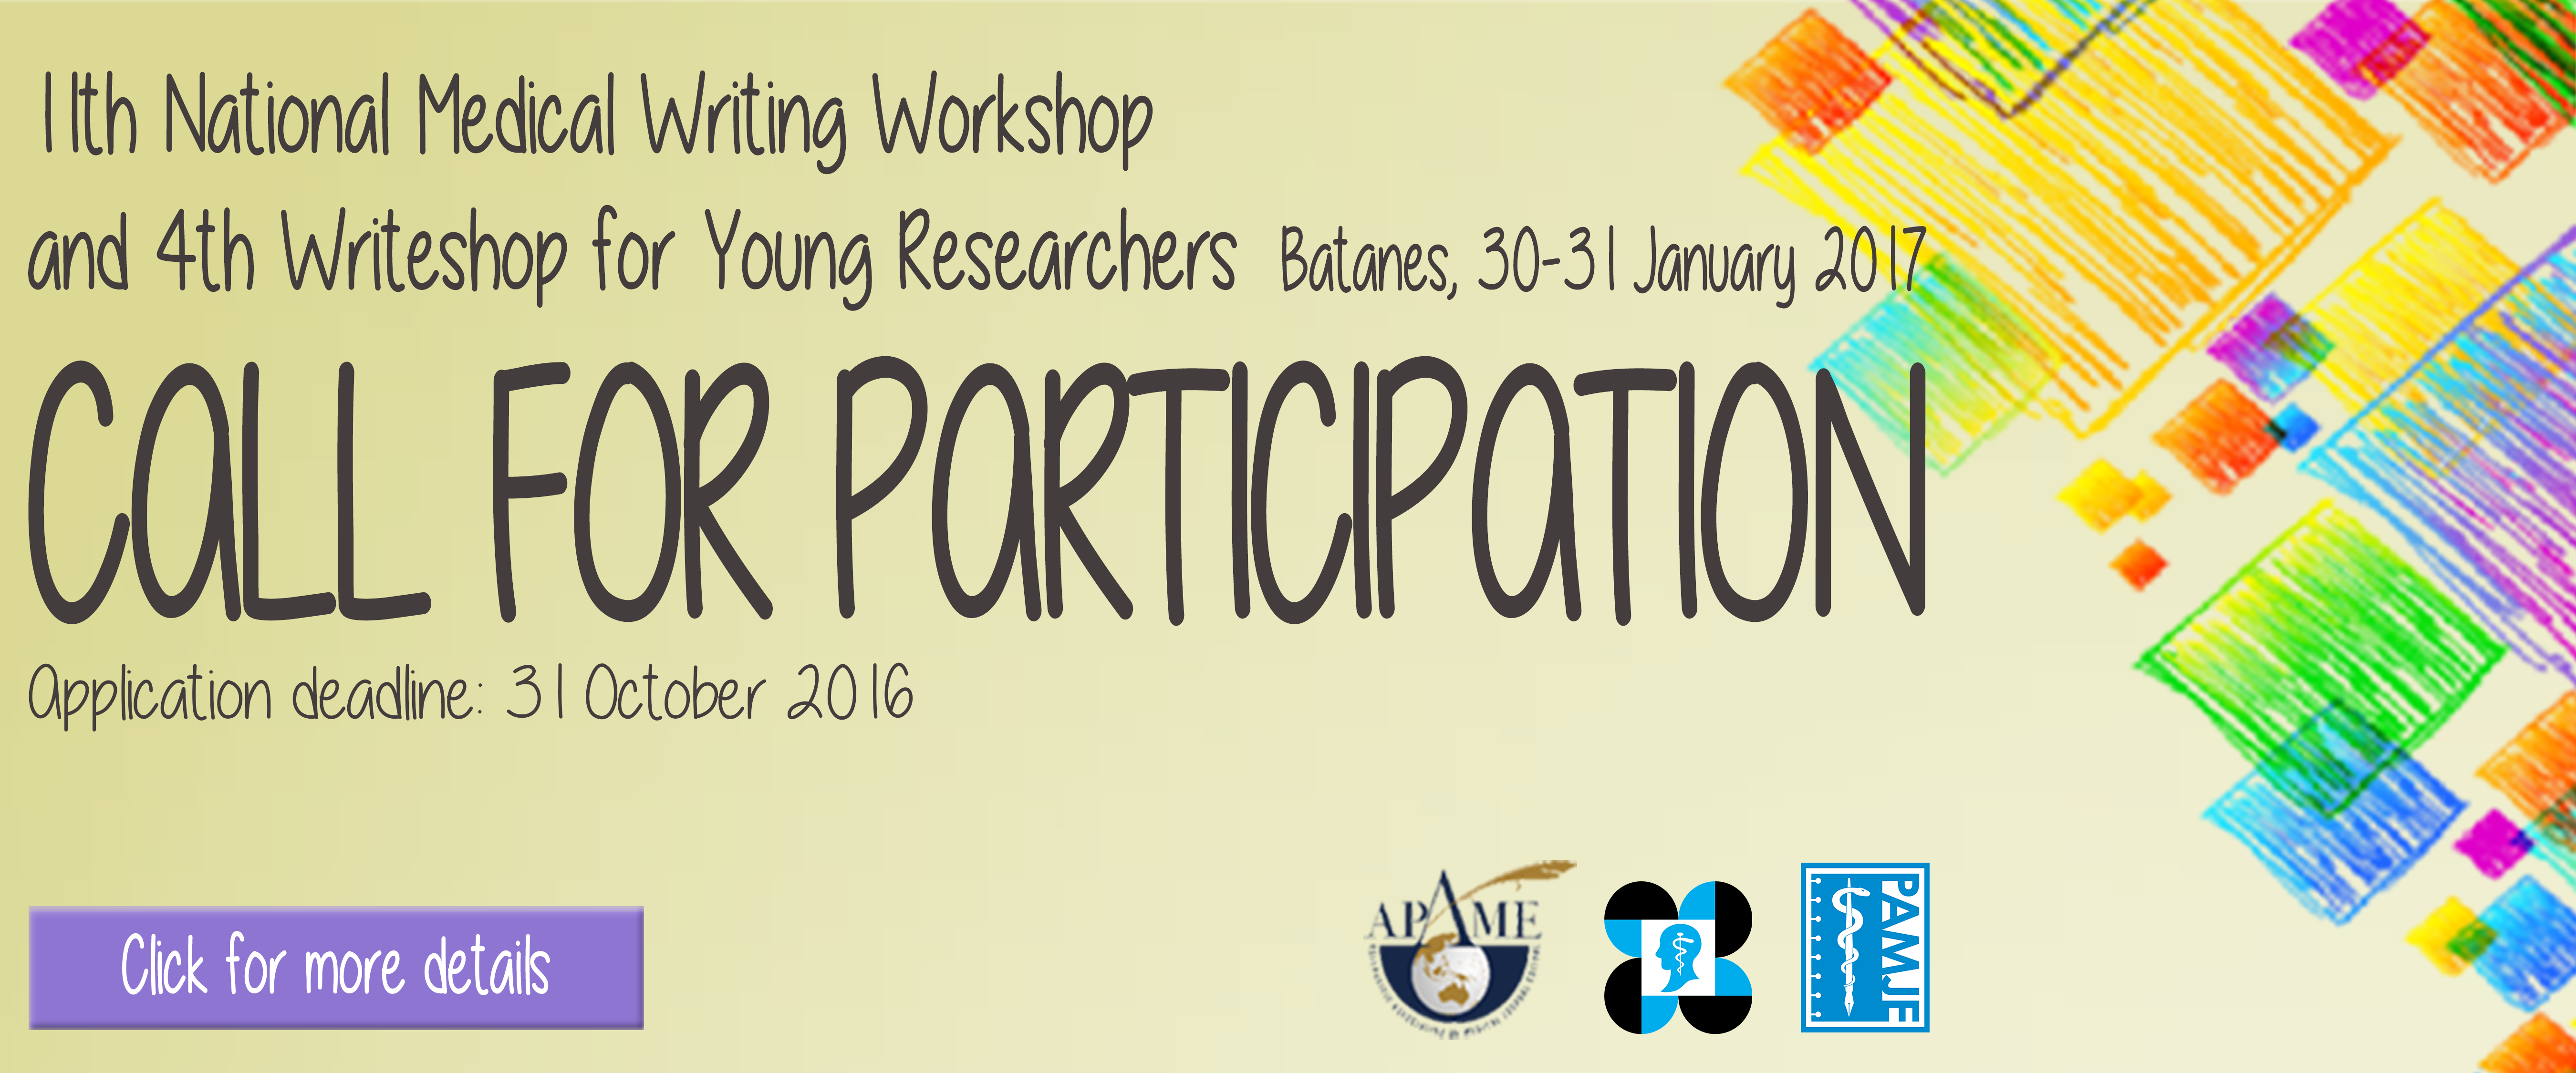 CALL FOR PARTICIPATION: 11th National Medical Writing Workshop & 4th Writeshop for Young Researchers